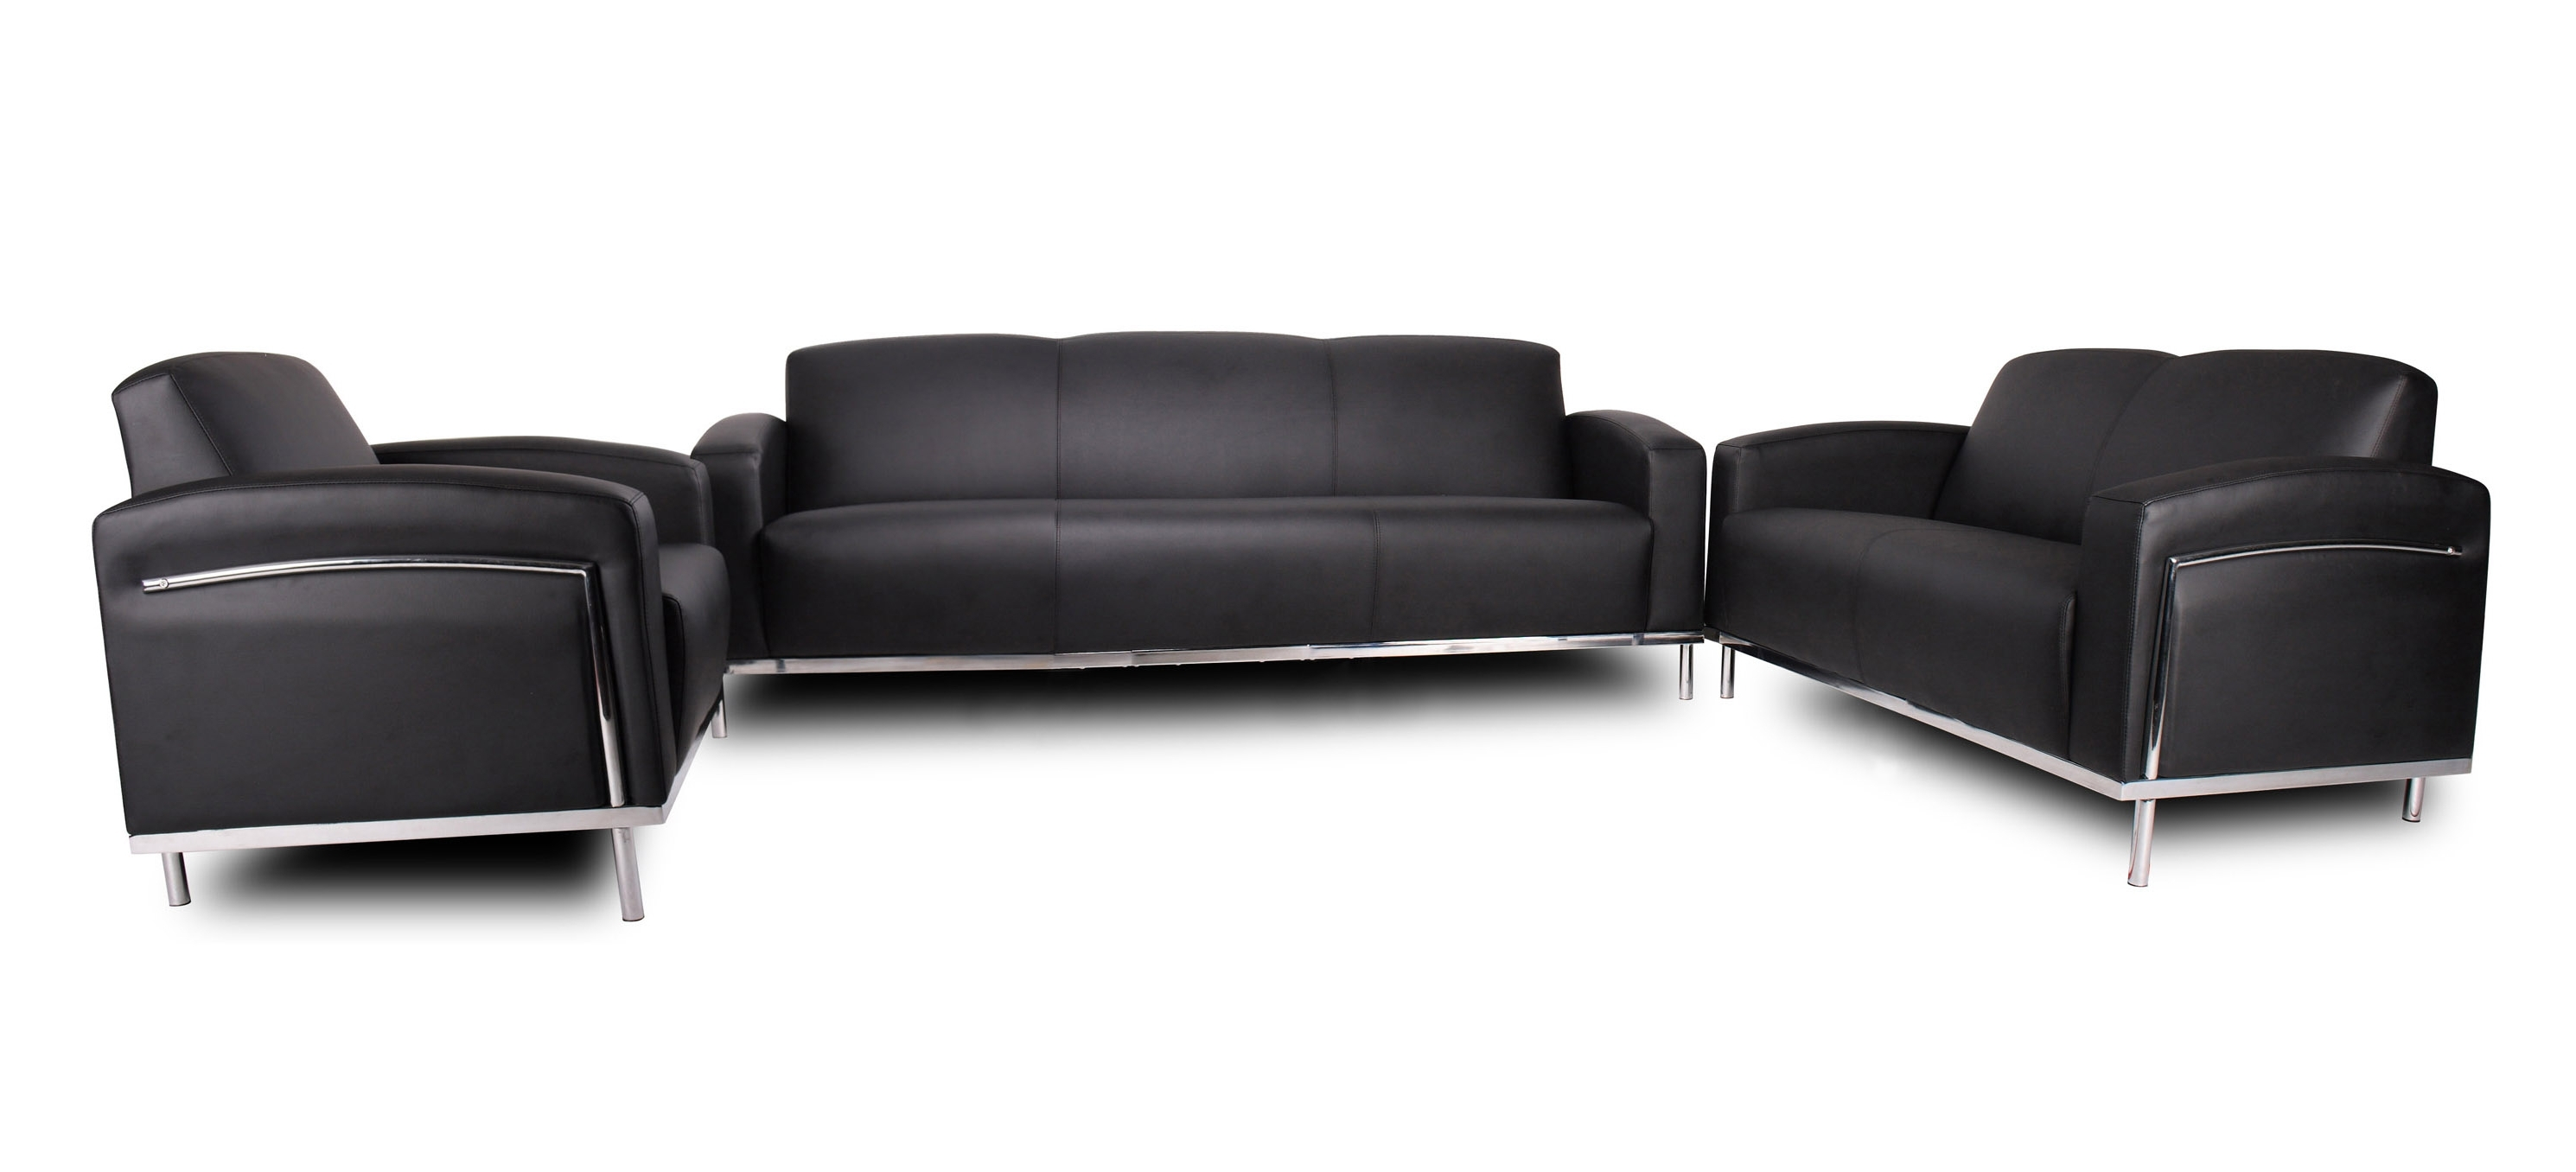 Office Sofas Within Most Popular Sofas : Red Office Sofa Modern Office Sofa Reception Area Couches (View 16 of 20)